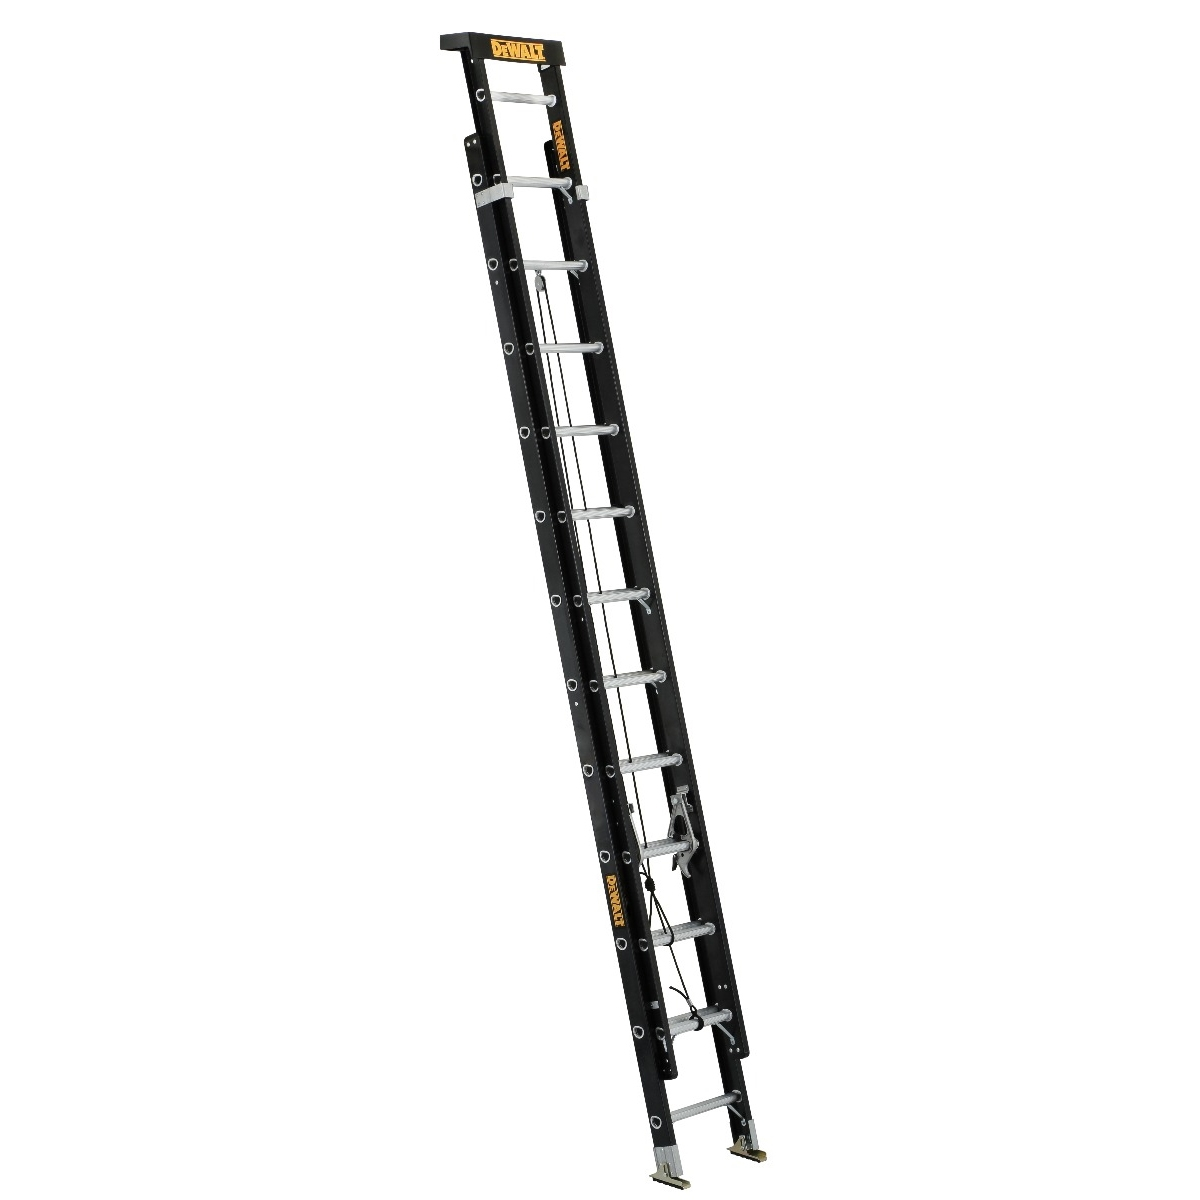 Picture of DeWALT DXL3020-28PT Extension Ladder, 329 in H Reach, 300 lb, 1-1/2 in D Step, Fiberglass